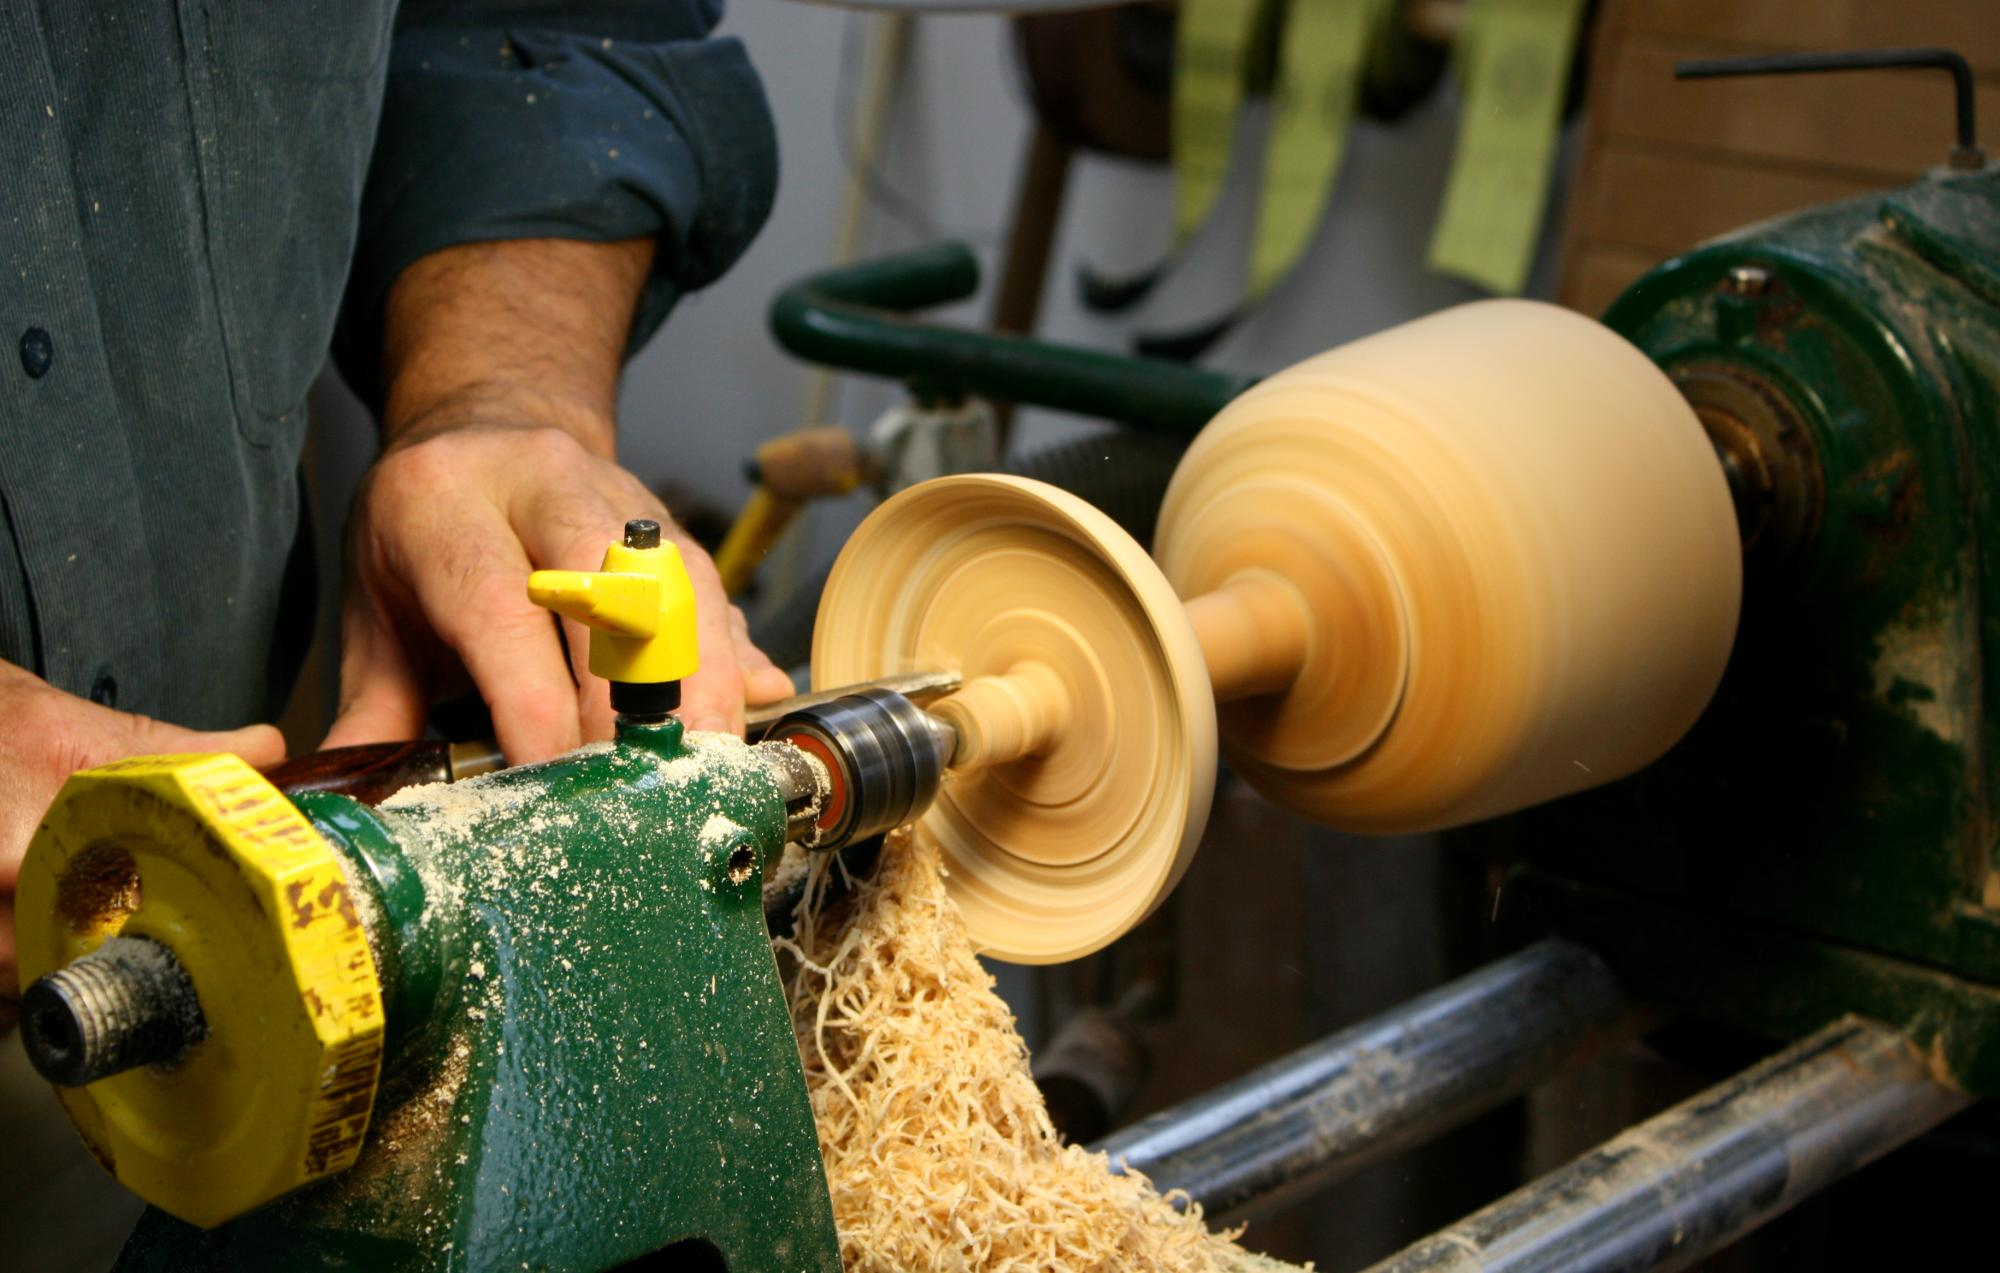 woodworking equipment - woodworking showroom - DJ Evans